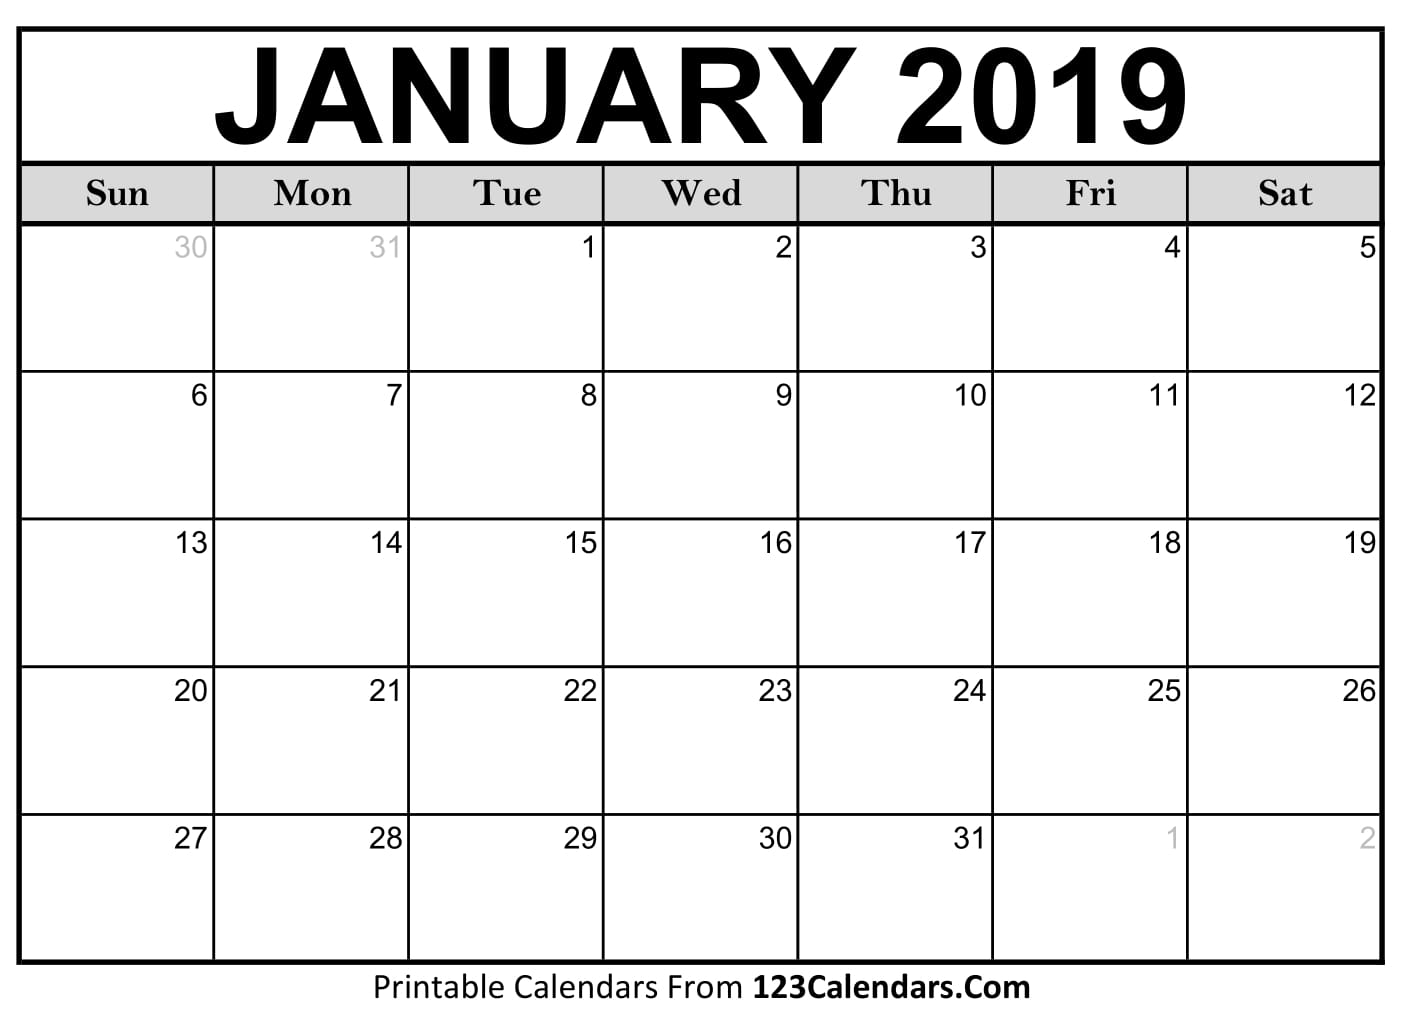 January 2019 Calendar Blank Easily Printable 123calendars